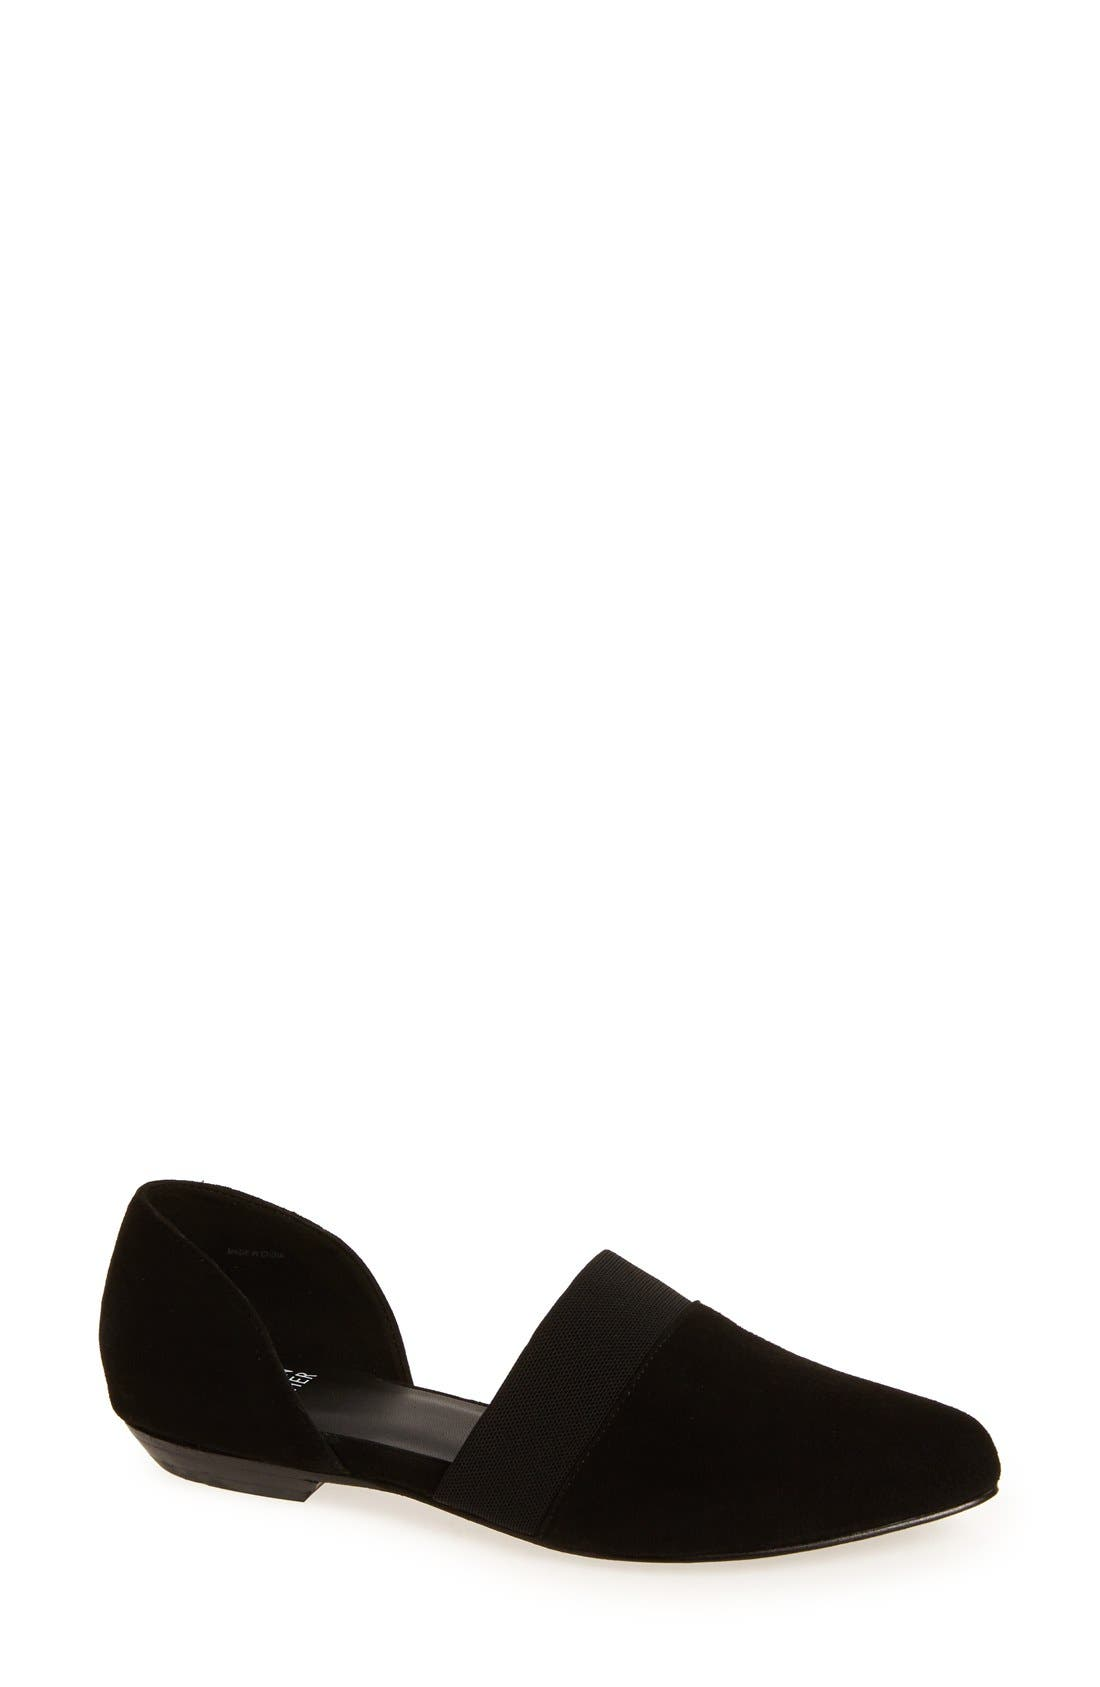 EILEEN FISHER, Flute Pointy Toe Flat, Main thumbnail 1, color, BLACK SUEDE